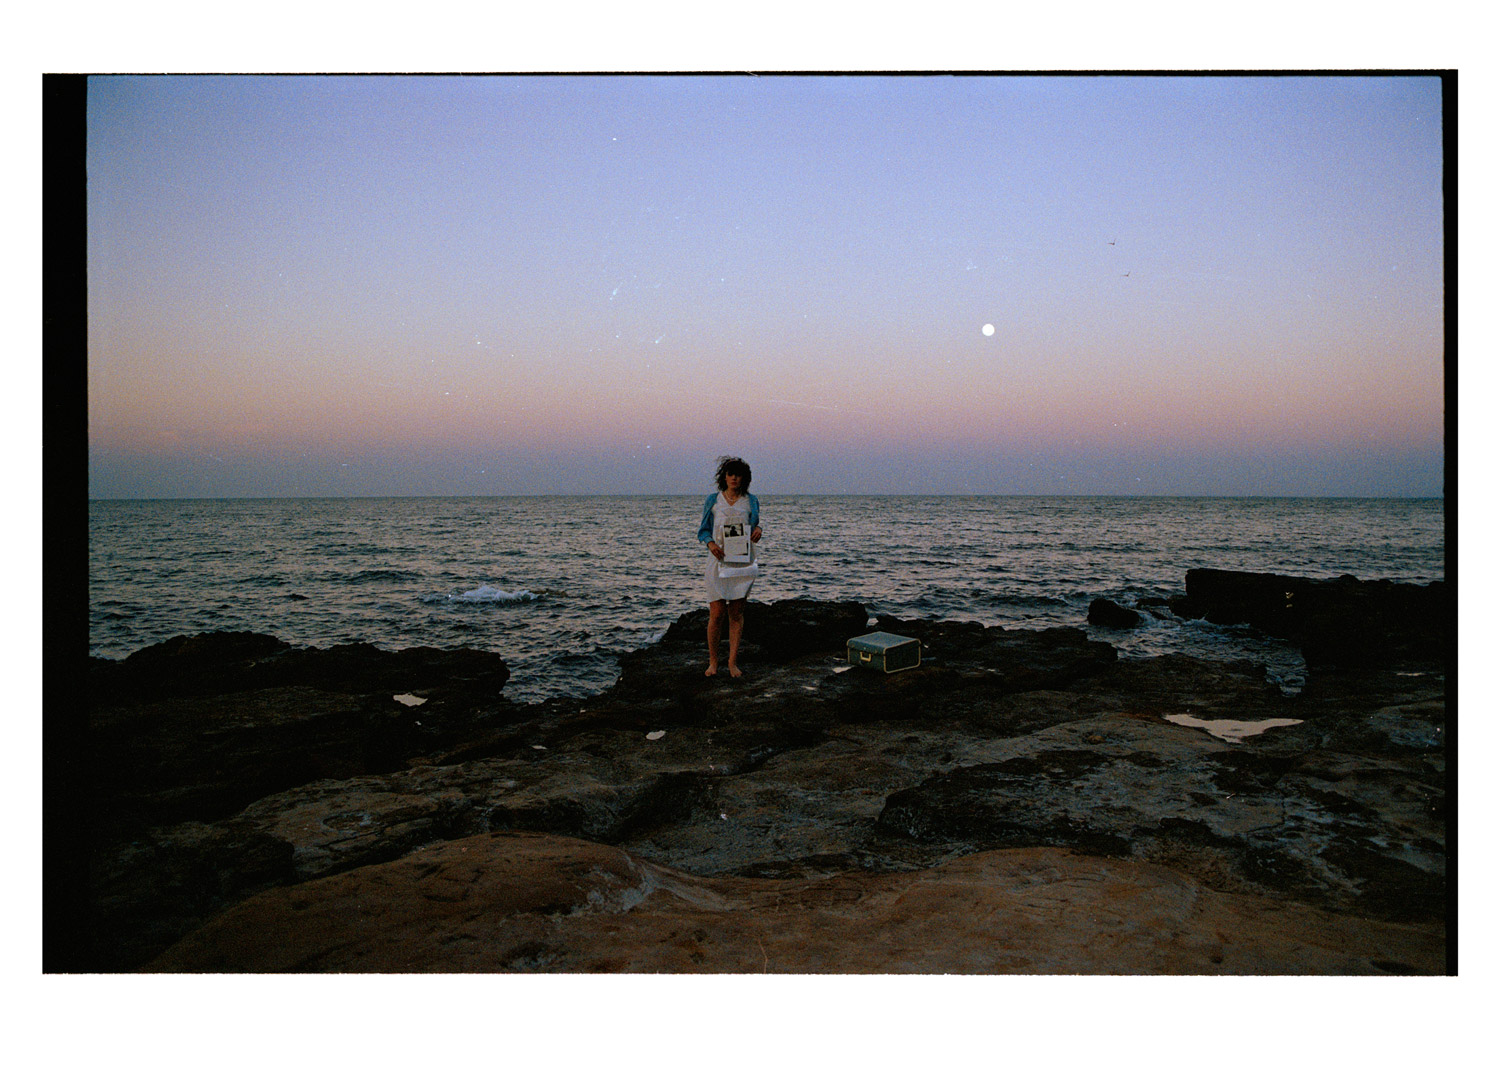 Away with it all [by dawn] 2010 (2013). Archival Inkjet Print on Hahnemühle Photo Rag. 48 x 33cm. Edition of 5 + 2AP,